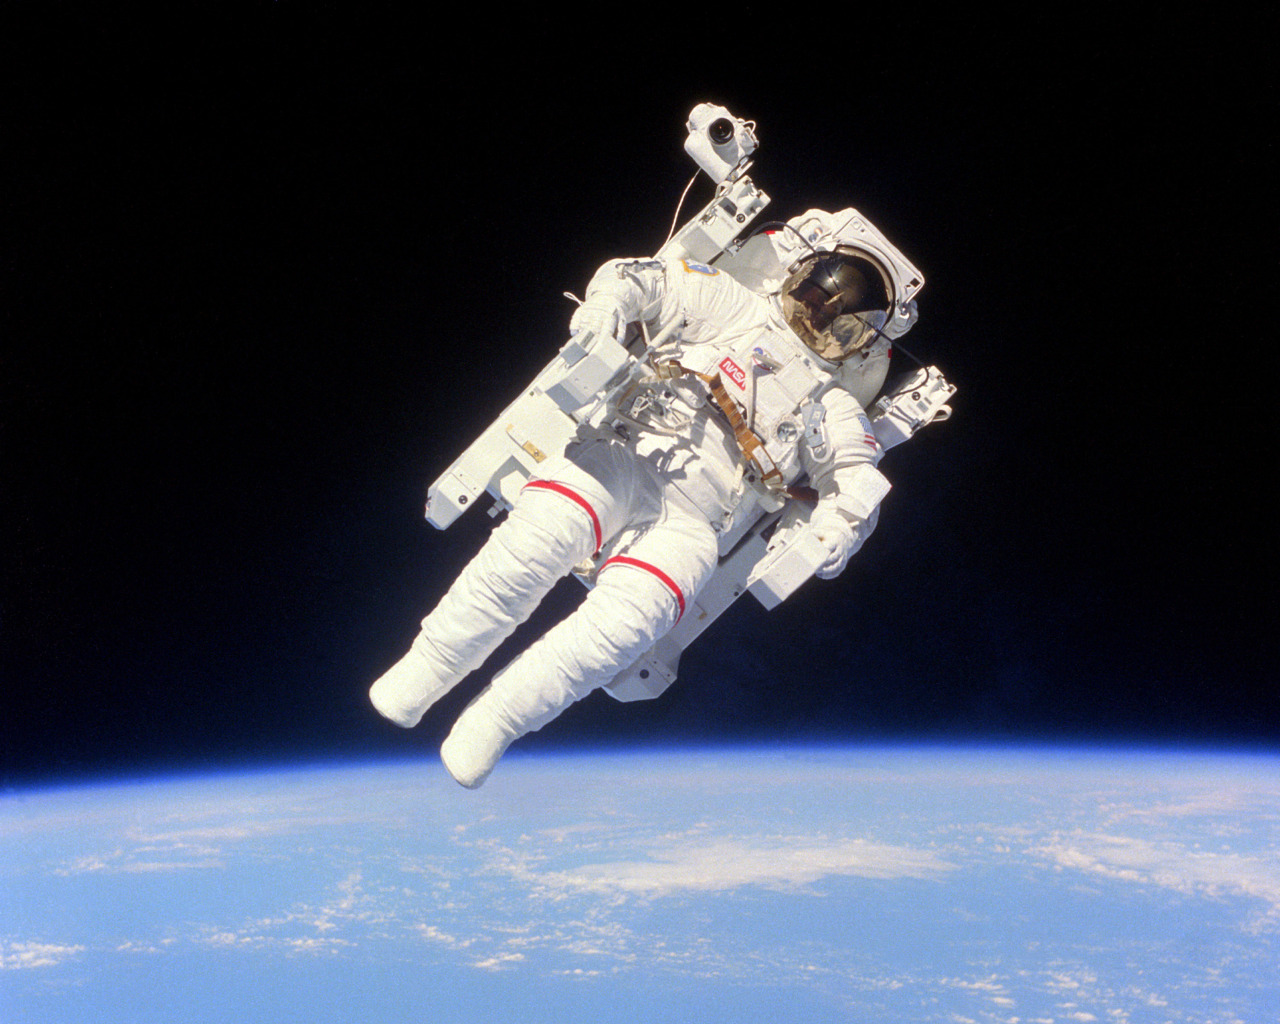 Astronaut Bruce McCandless II floats a few meters away from the cabin of the earth-orbiting Space Shuttle Challenger as part of an historic Extravehicular Activity (EVA) during Flight 41-B. This is the first use of the nitrogen-propelled, hand-controlled device called the Manned Maneuvering Unit (MMU), which allows astronauts to move freely in space without a tether, 02/07/1984